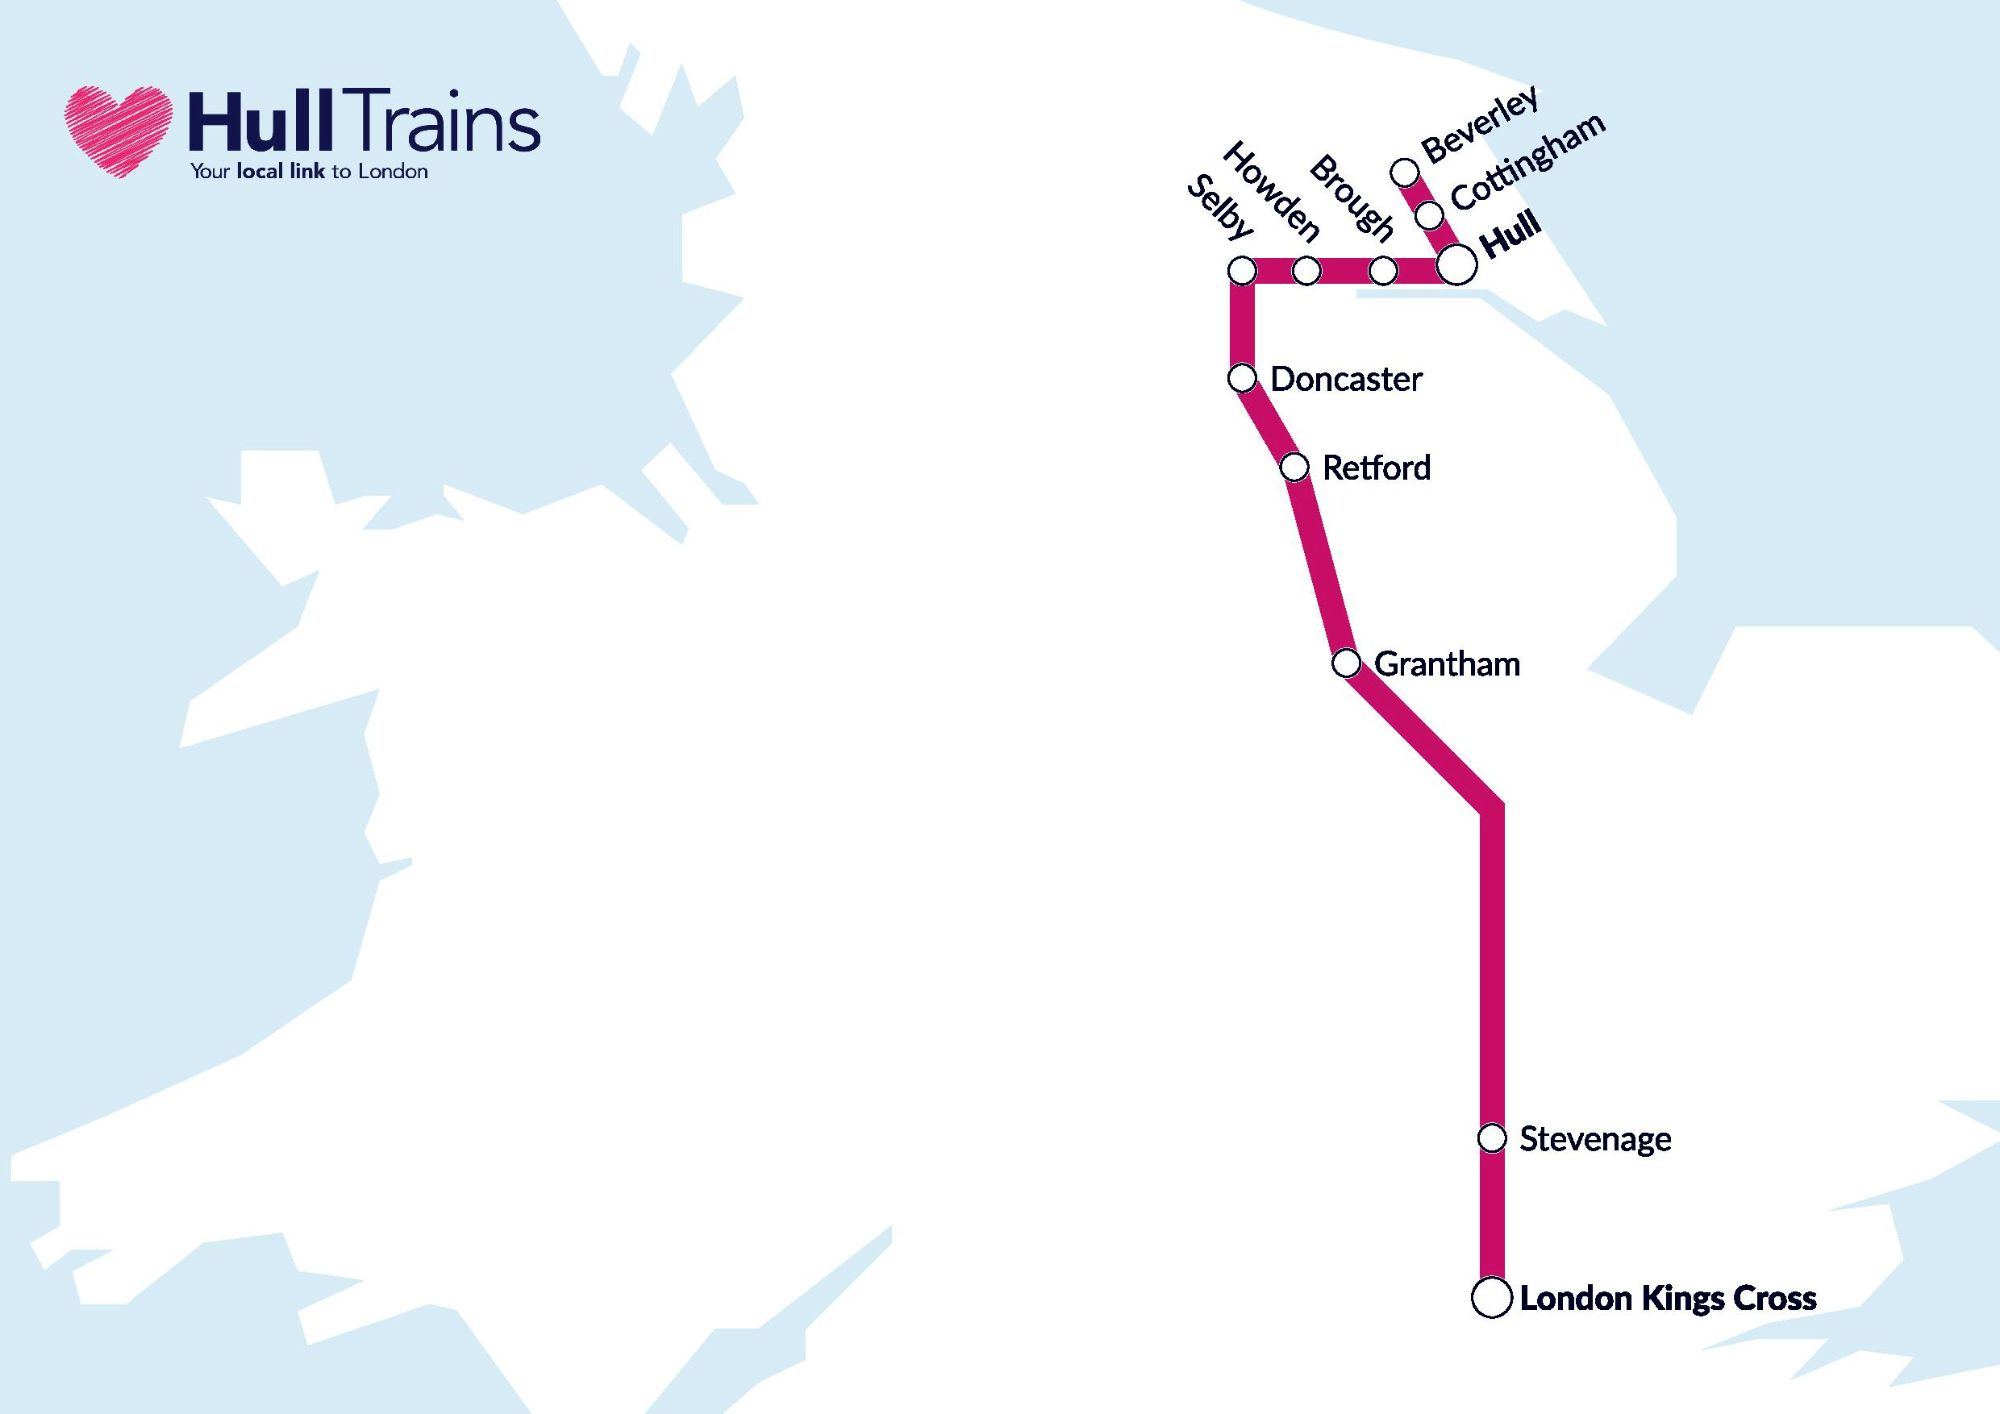 Image showing the First Hull Trains route map circa 2020.